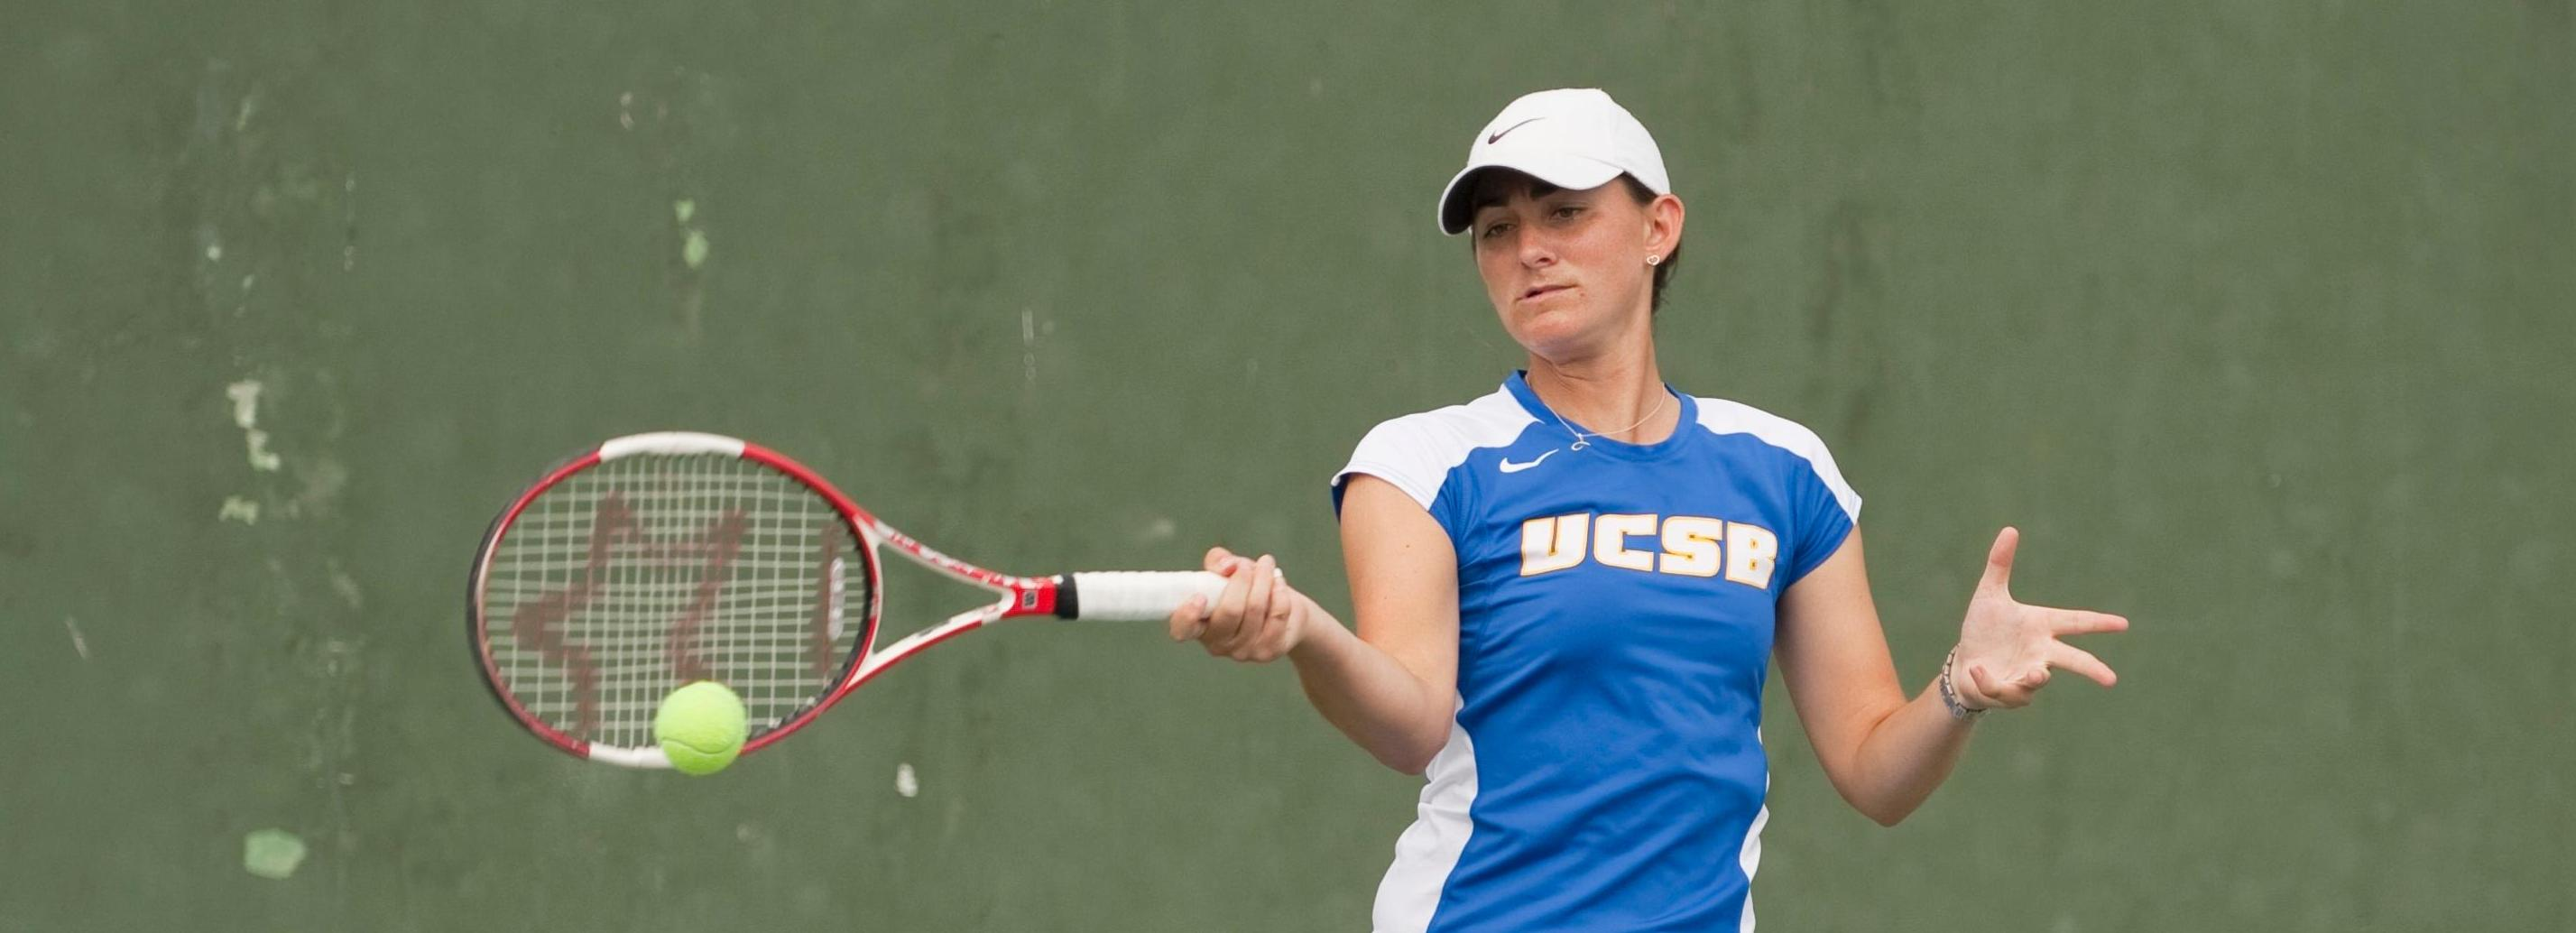 UCSB Drops Match to Pacific in the Quarterfinals of the Big West Tournament